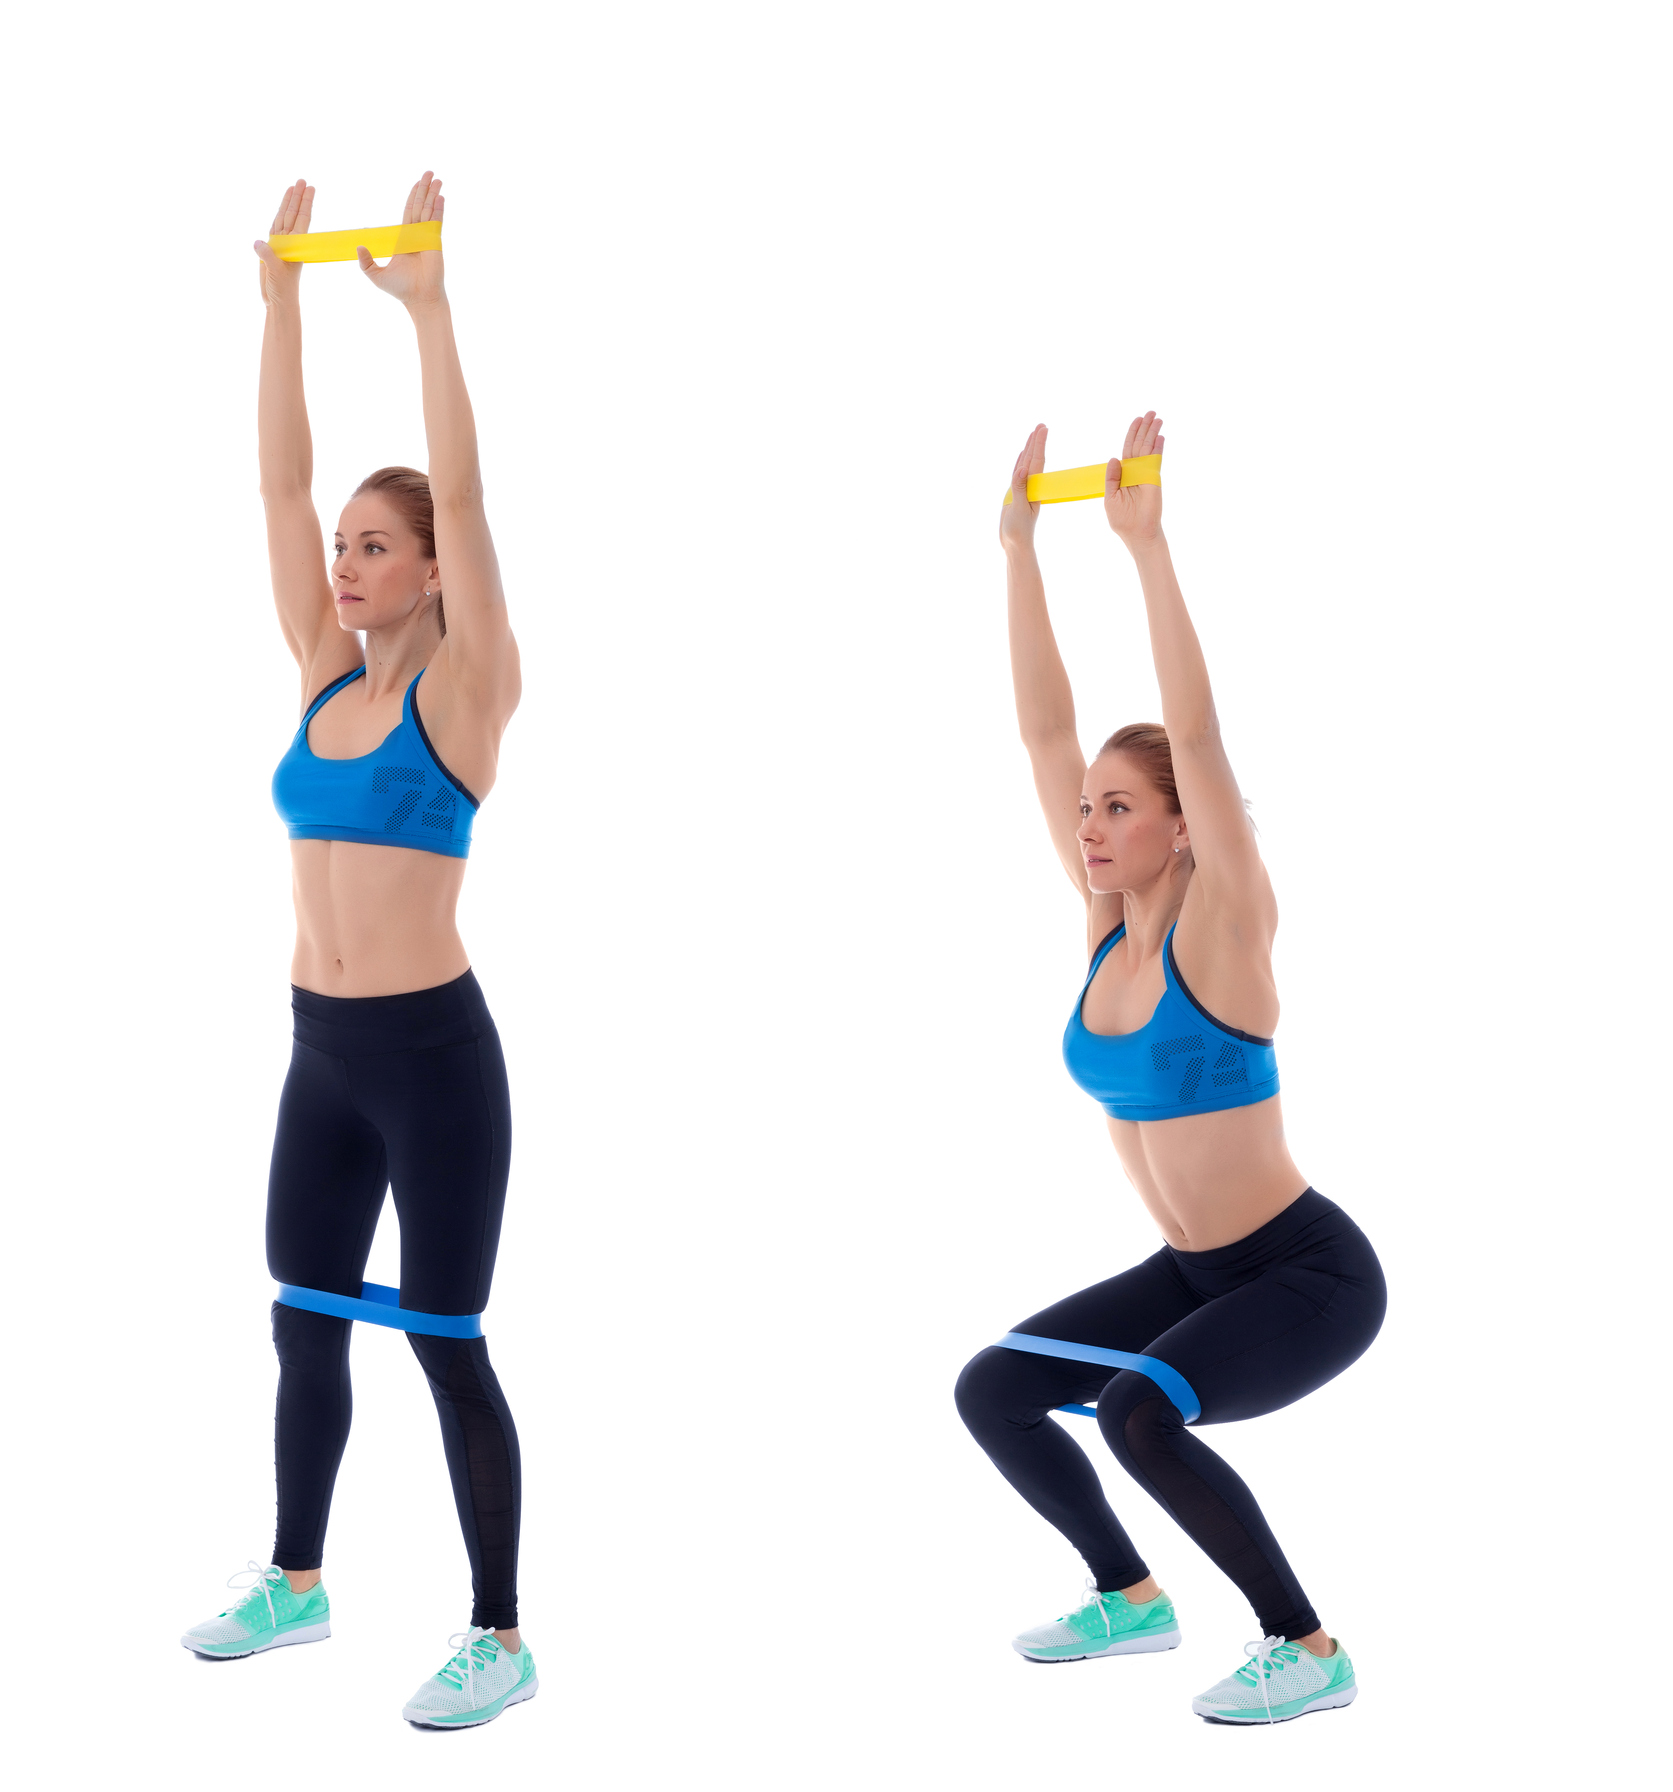 3 Exercises You Can Do Now To Help Build Strength In Your